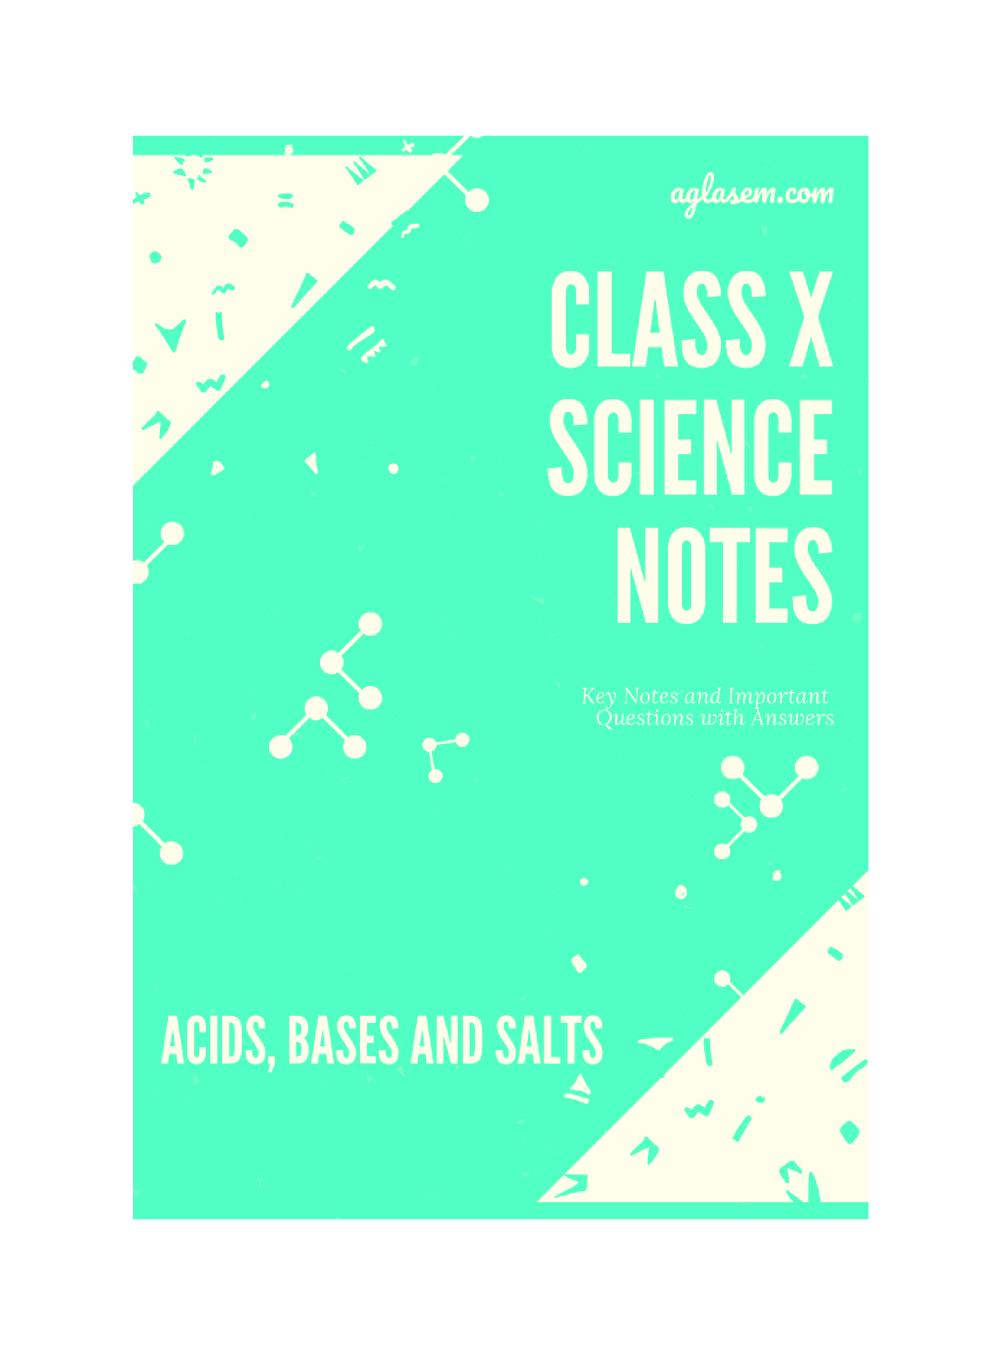 Class 10 Science Acid Bases and Salts Notes, Important Questions & Practice Paper